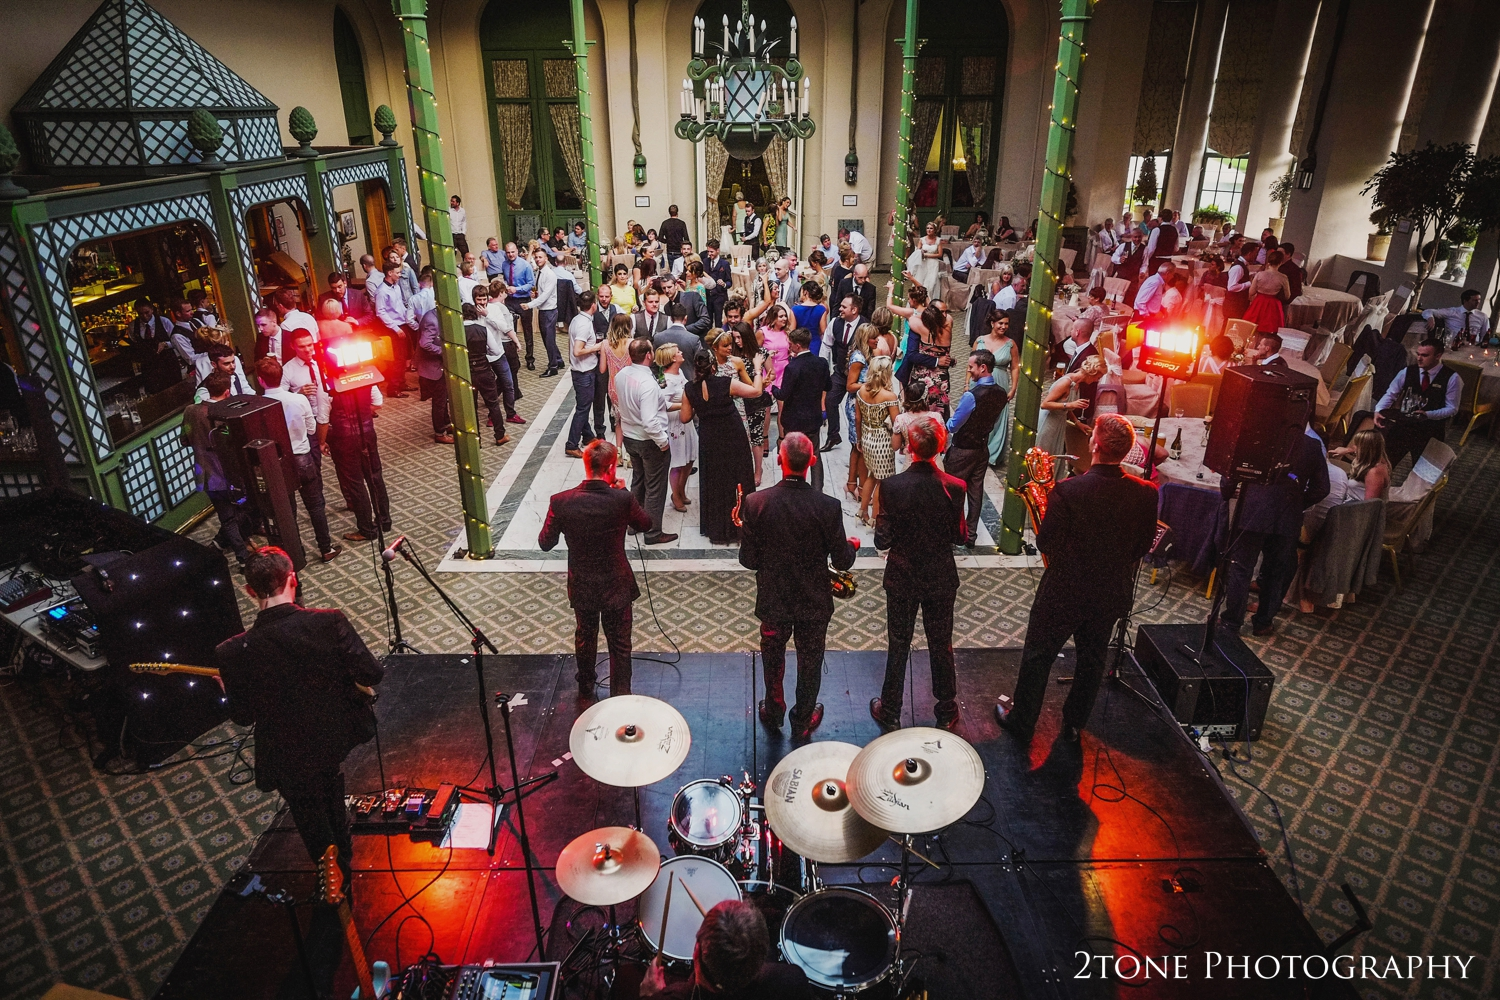 The conservatory at Wynyard Hall with the party in fully swing, what a great way to end the day.